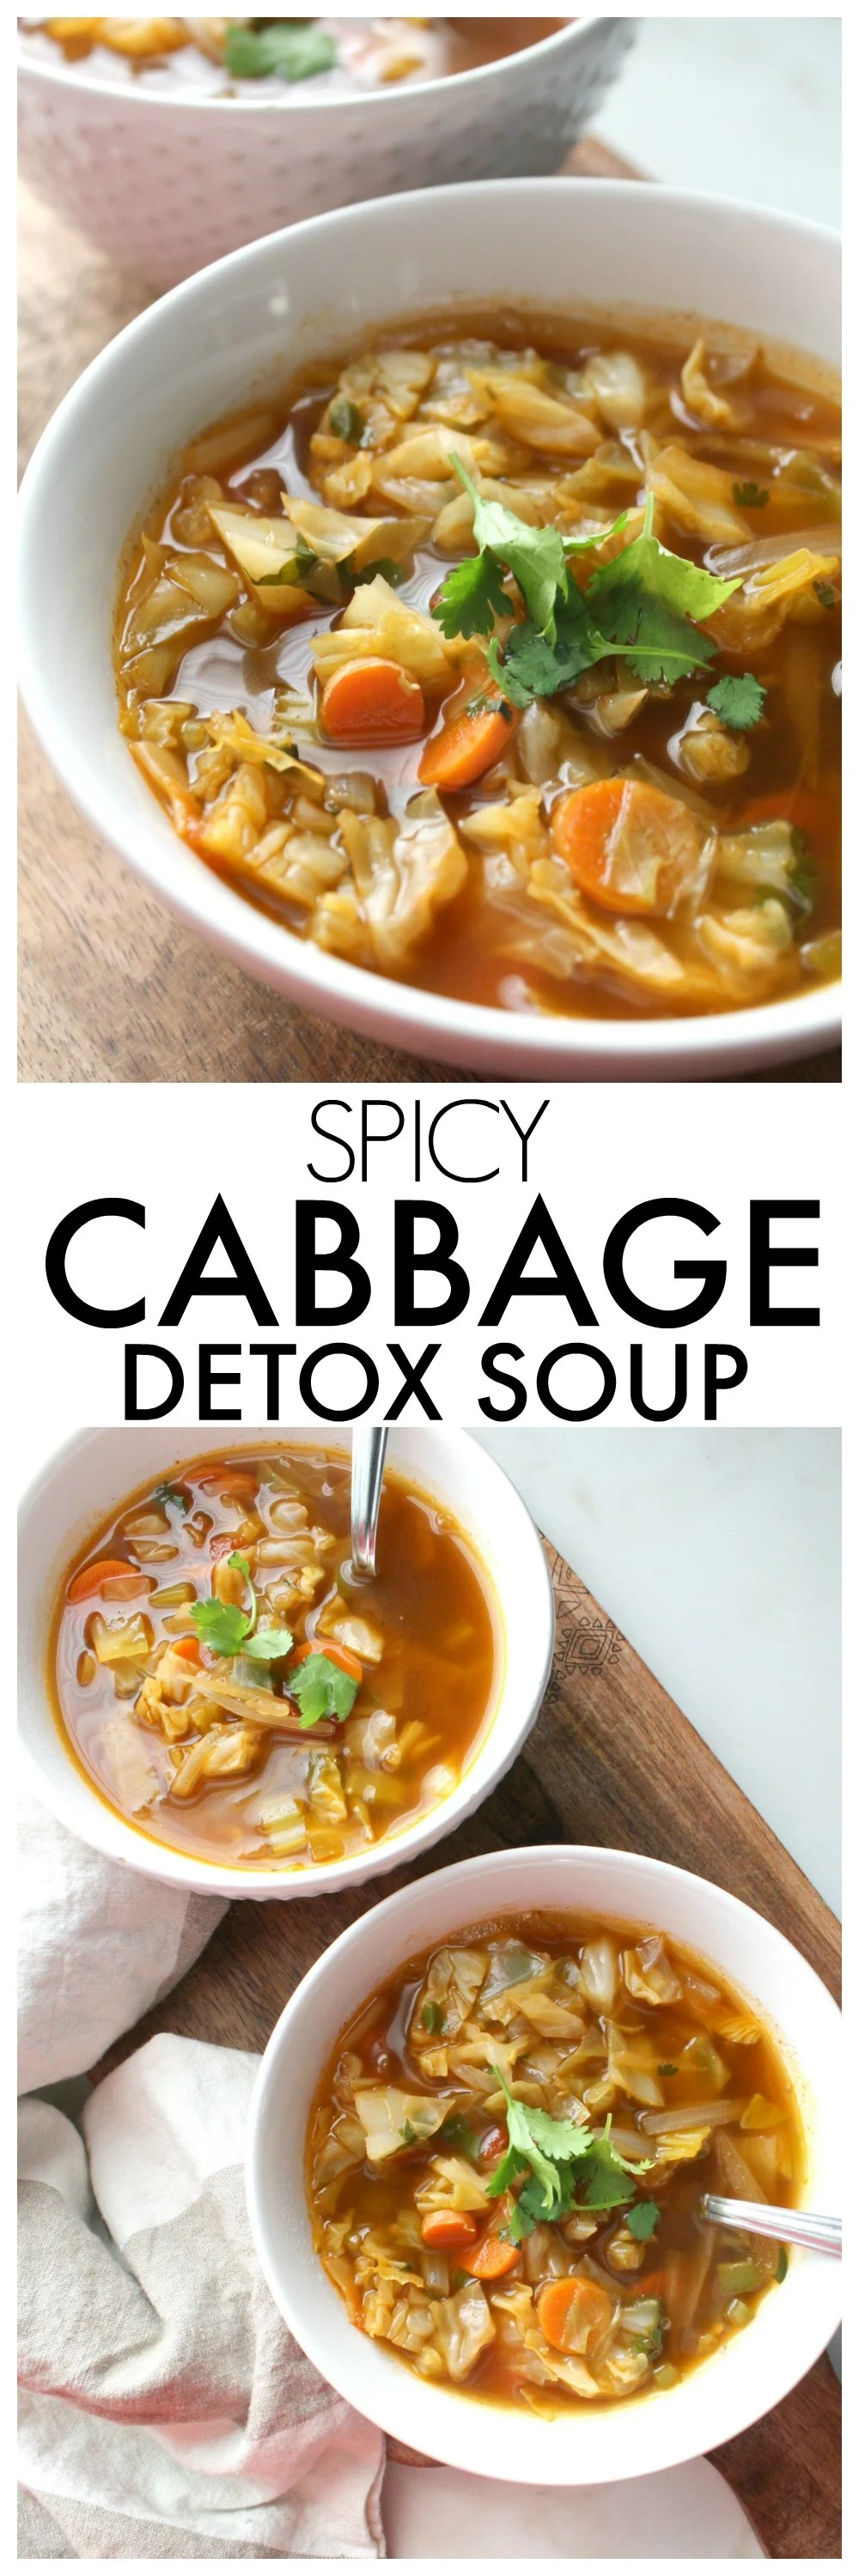 Perfect for those cold winter days, thisSpicy Cabbage Detox Soup is packed full of veggies, spices and a delicious vegan beef broth | ThisSavoryVegan.com #vegan #vegansoup